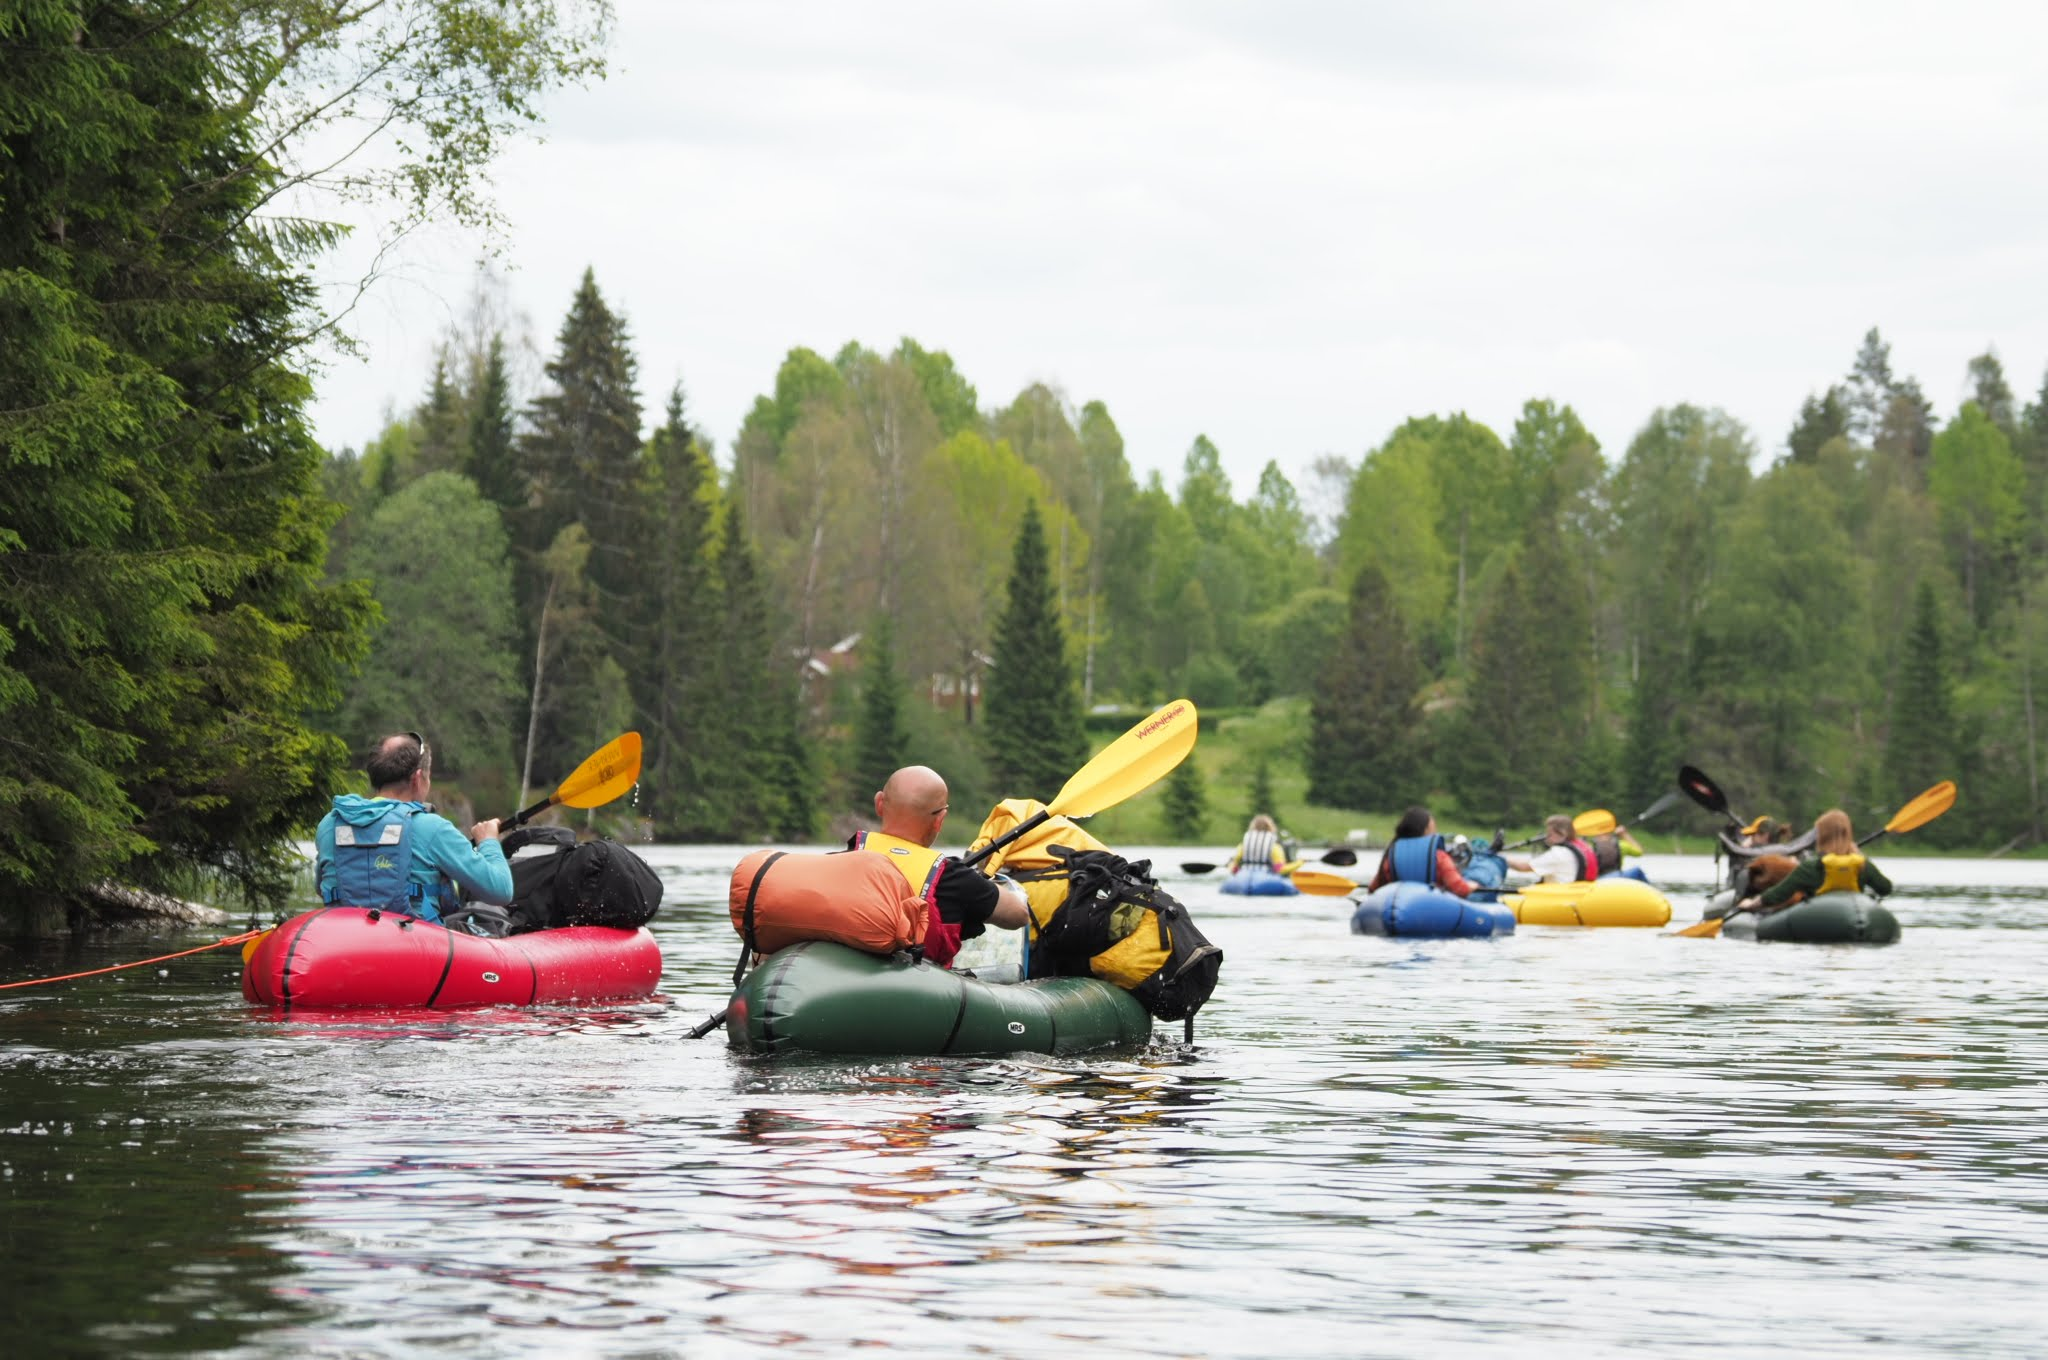 Packrafting on lakes close to Oslo (Photo: Sigurd Stubberud)